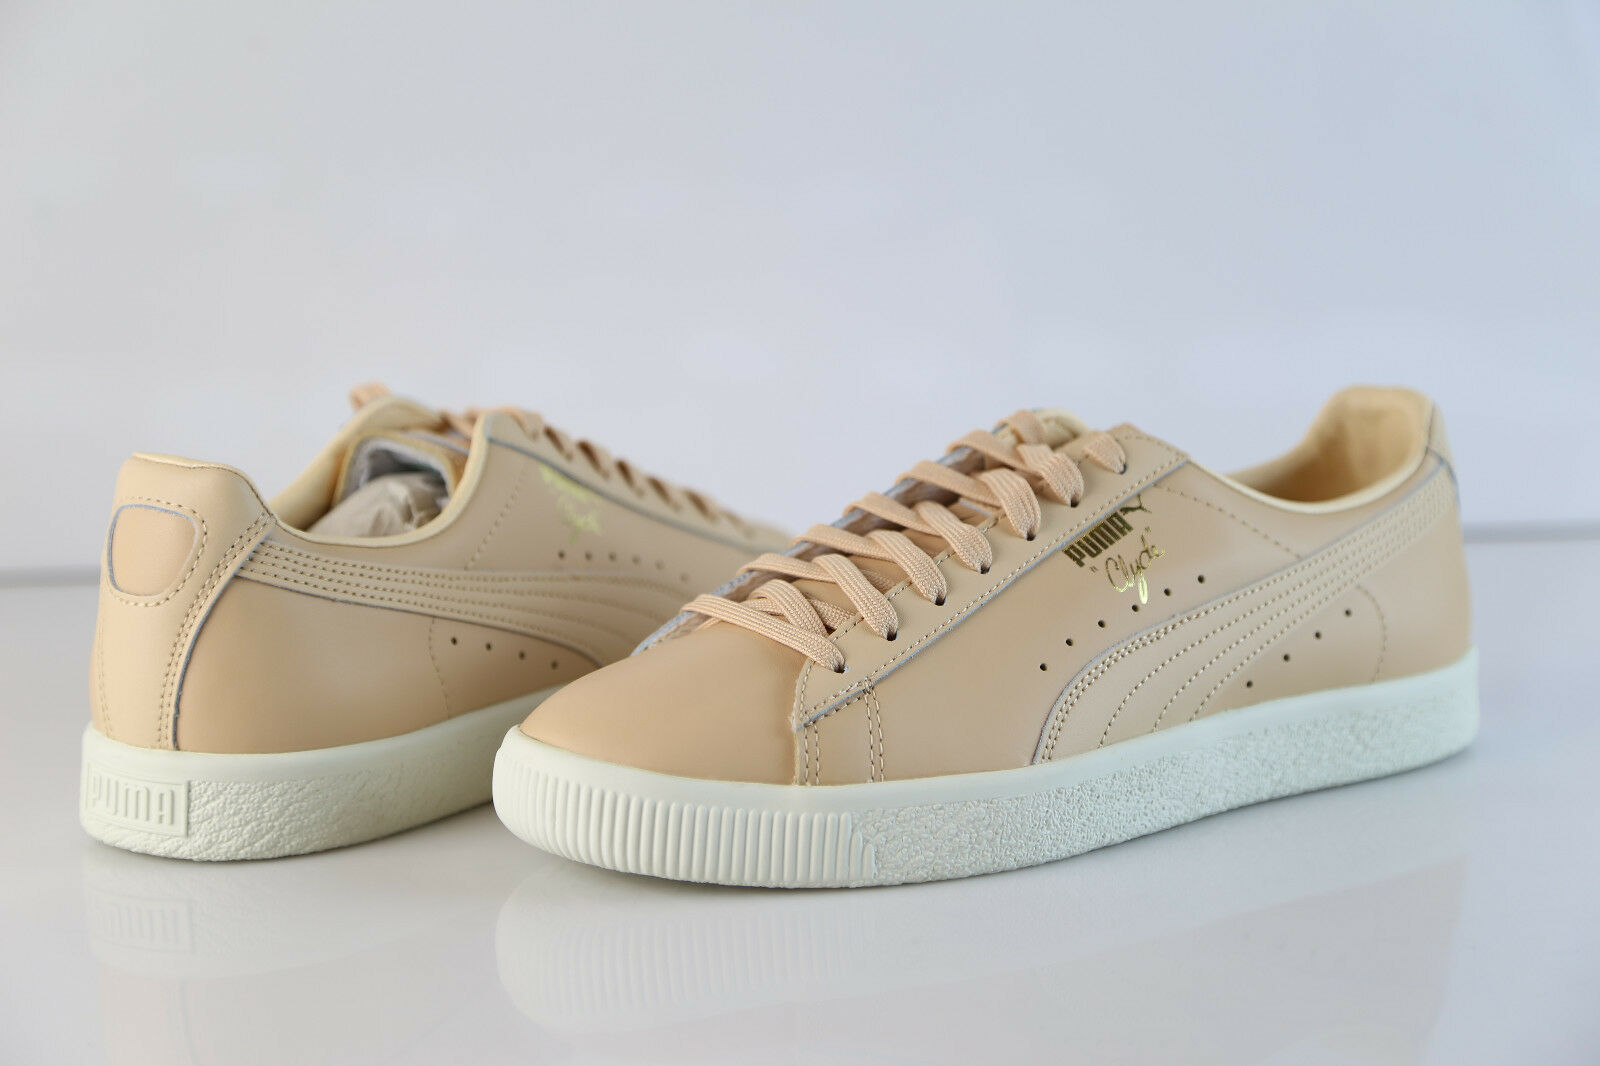 finest selection 95147 6f87b ... Puma Clyde Natural Vachetta Tan 363617 03 8-9.5 8-9.5 8-9.5 ...